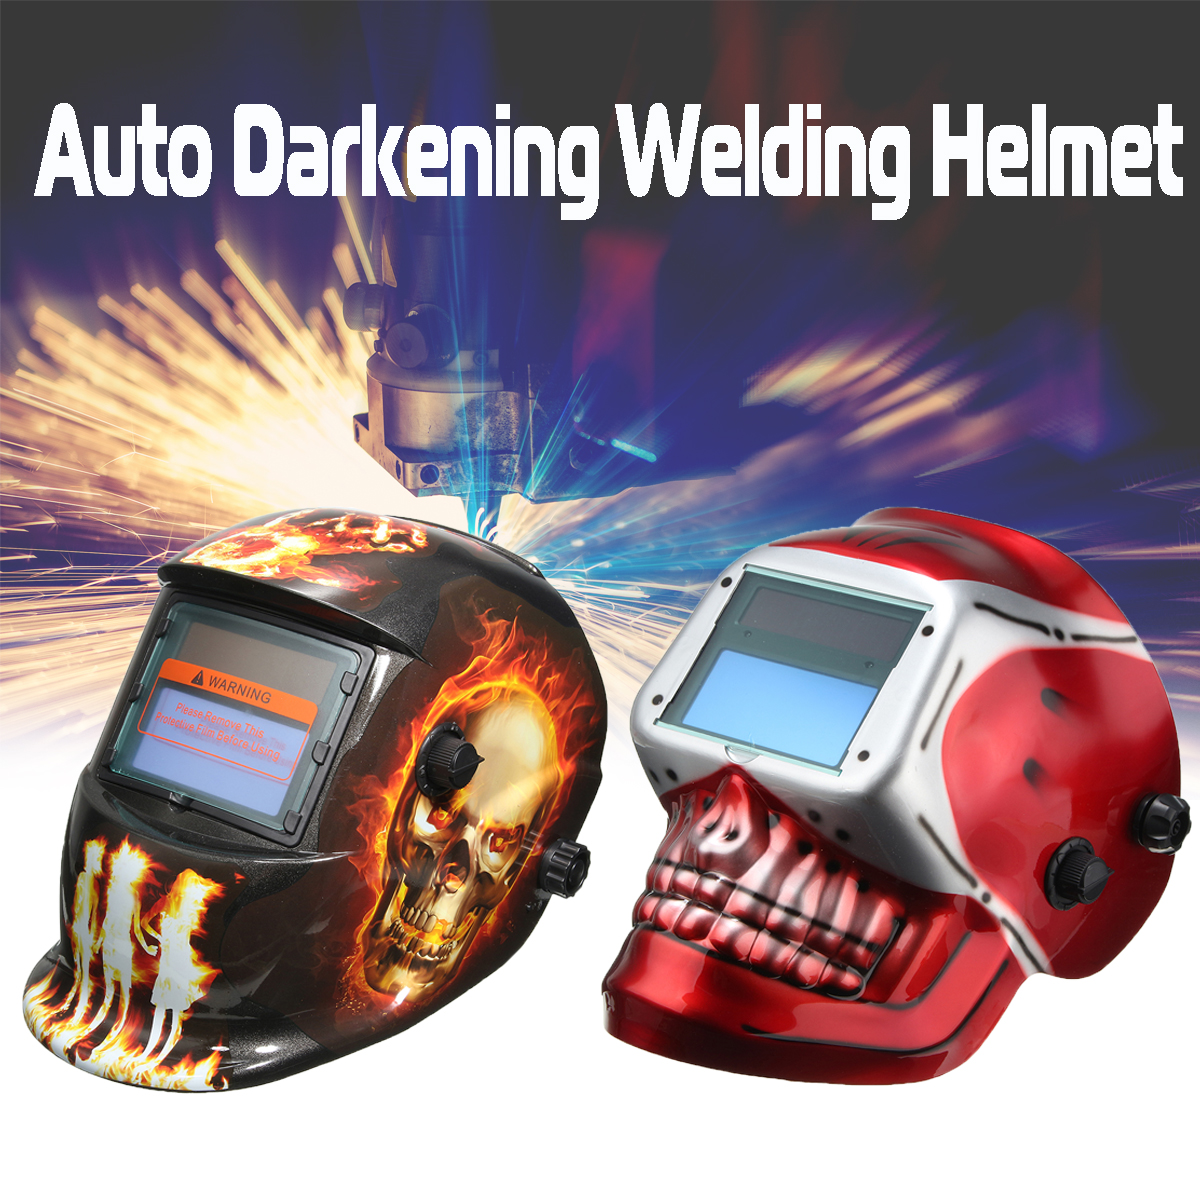 Solar Powered Auto Darkening Electric Welding Helmet Welding Mask/Lens for Welding Machine or Plasma Cutter solar auto darkening electric welding helmet mask welder cap welding lens glasses for welding machine plasma cutter